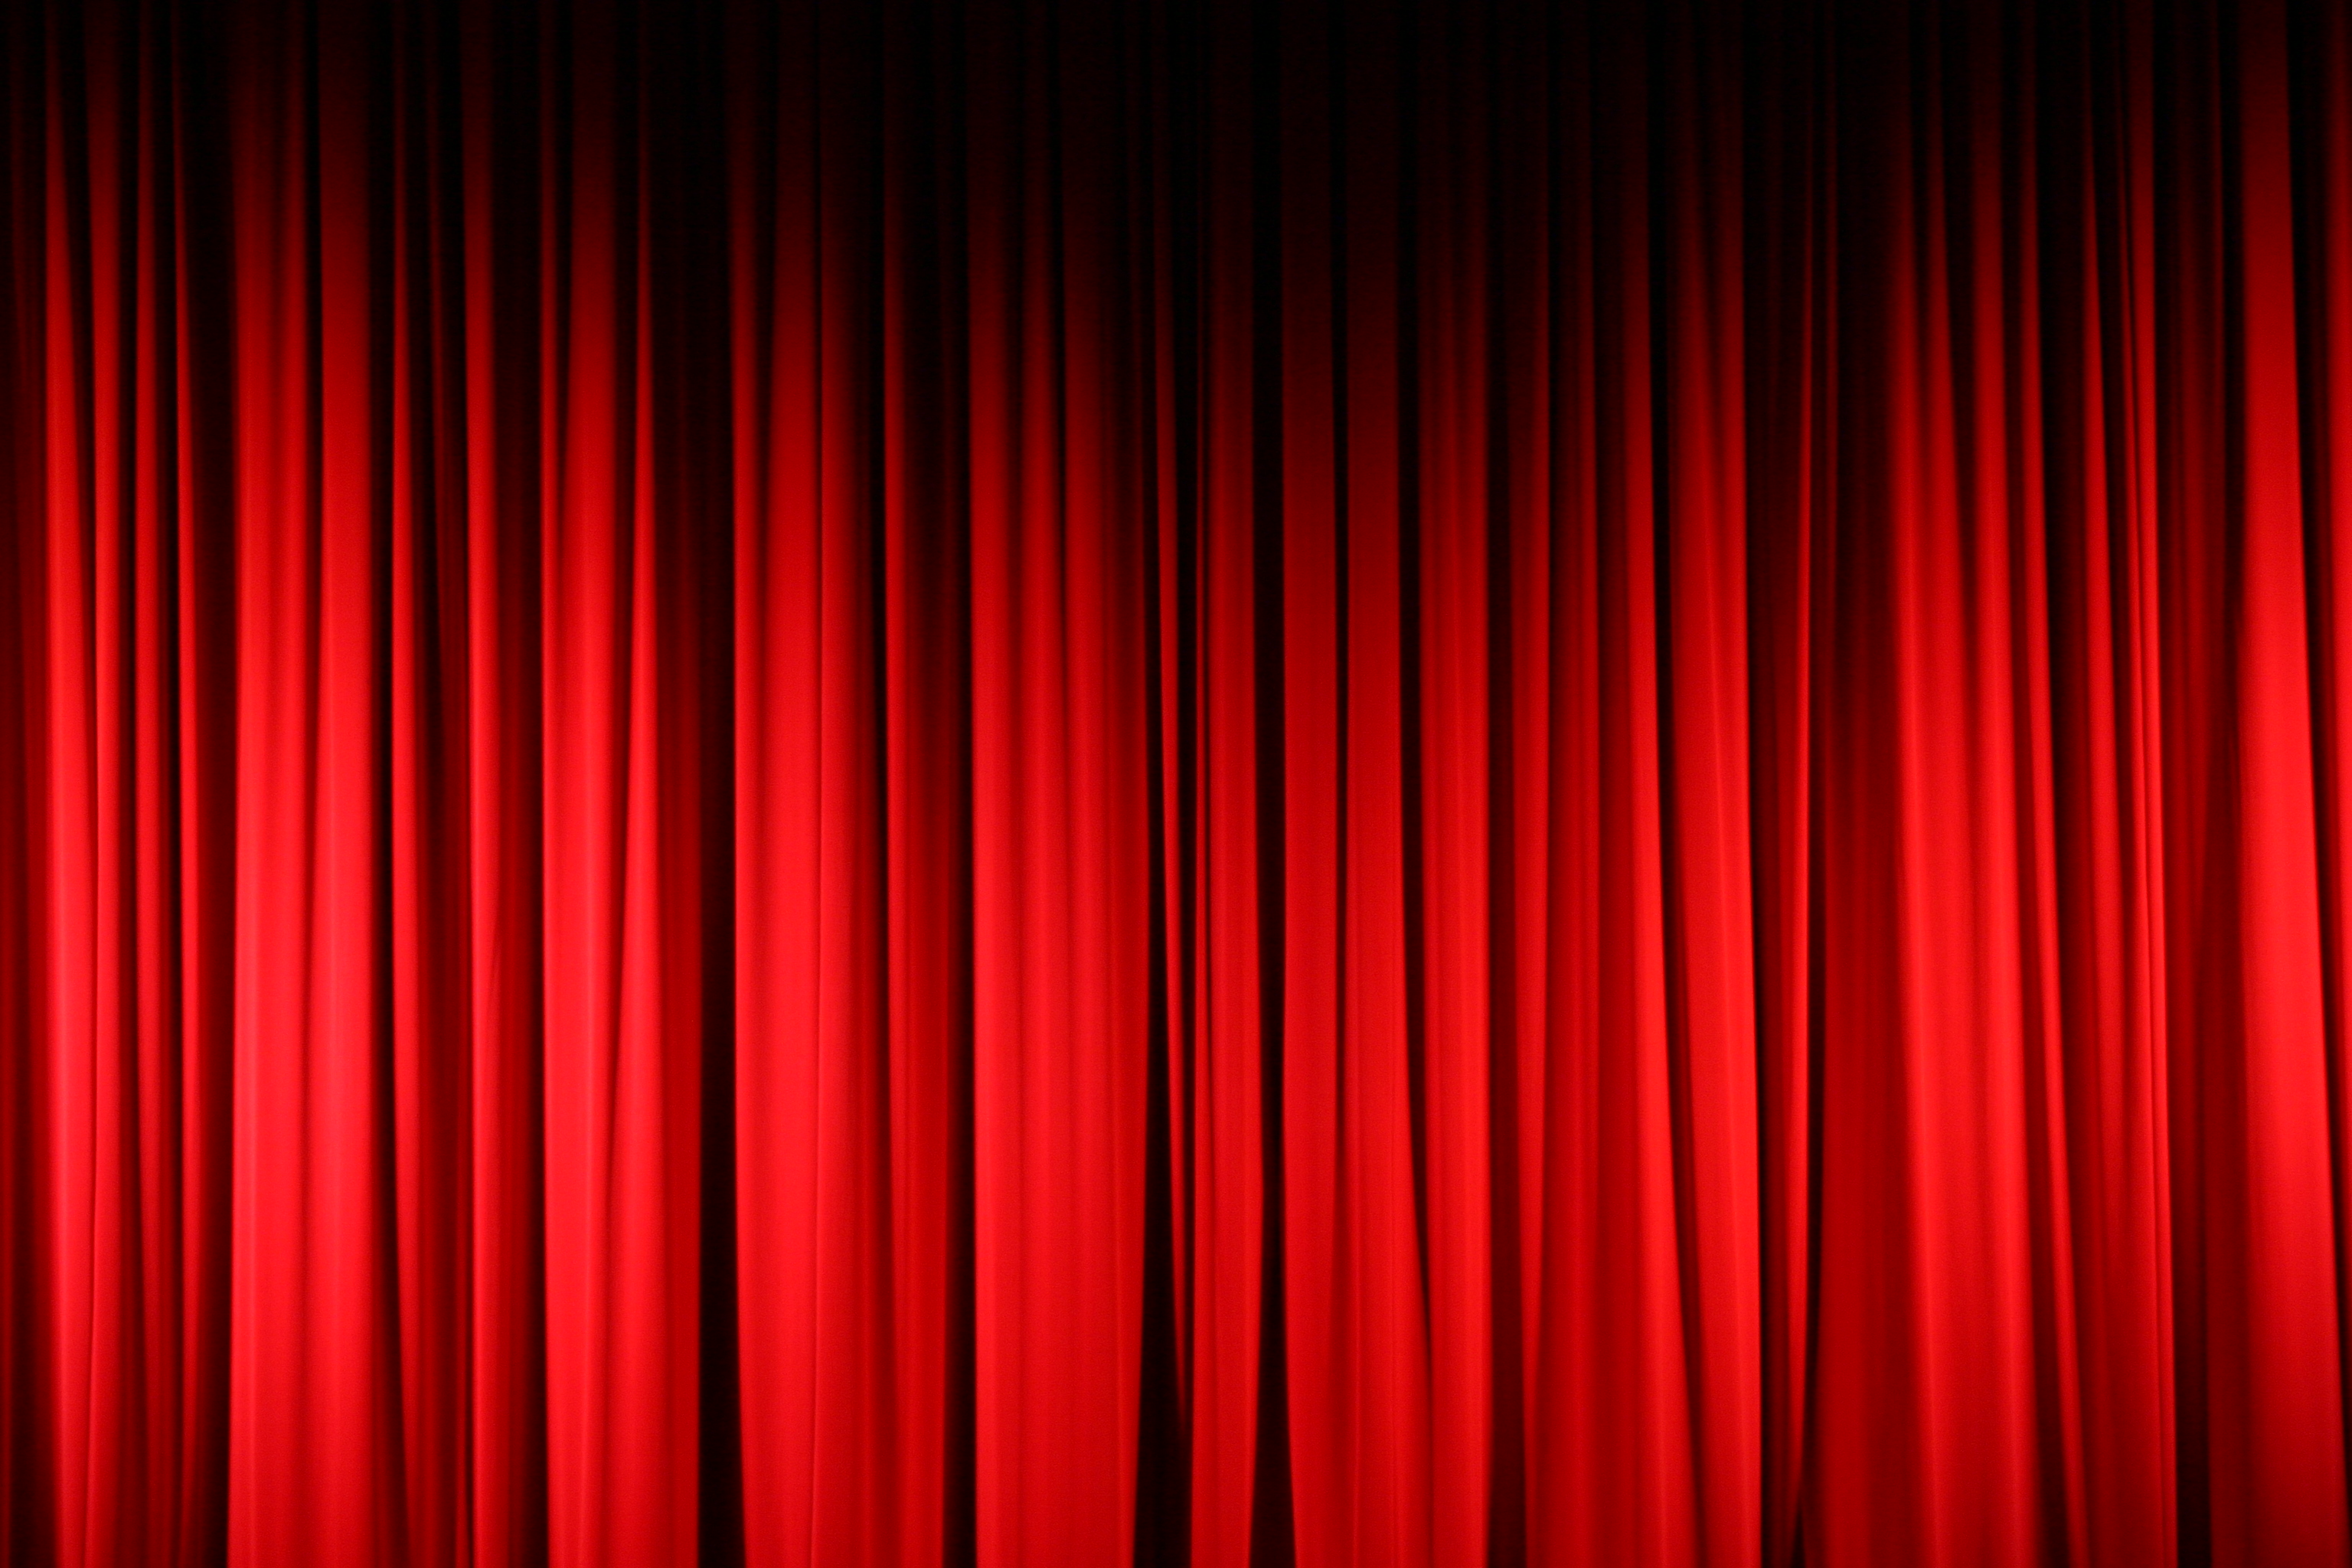 Just Red Curtains Clip Art.